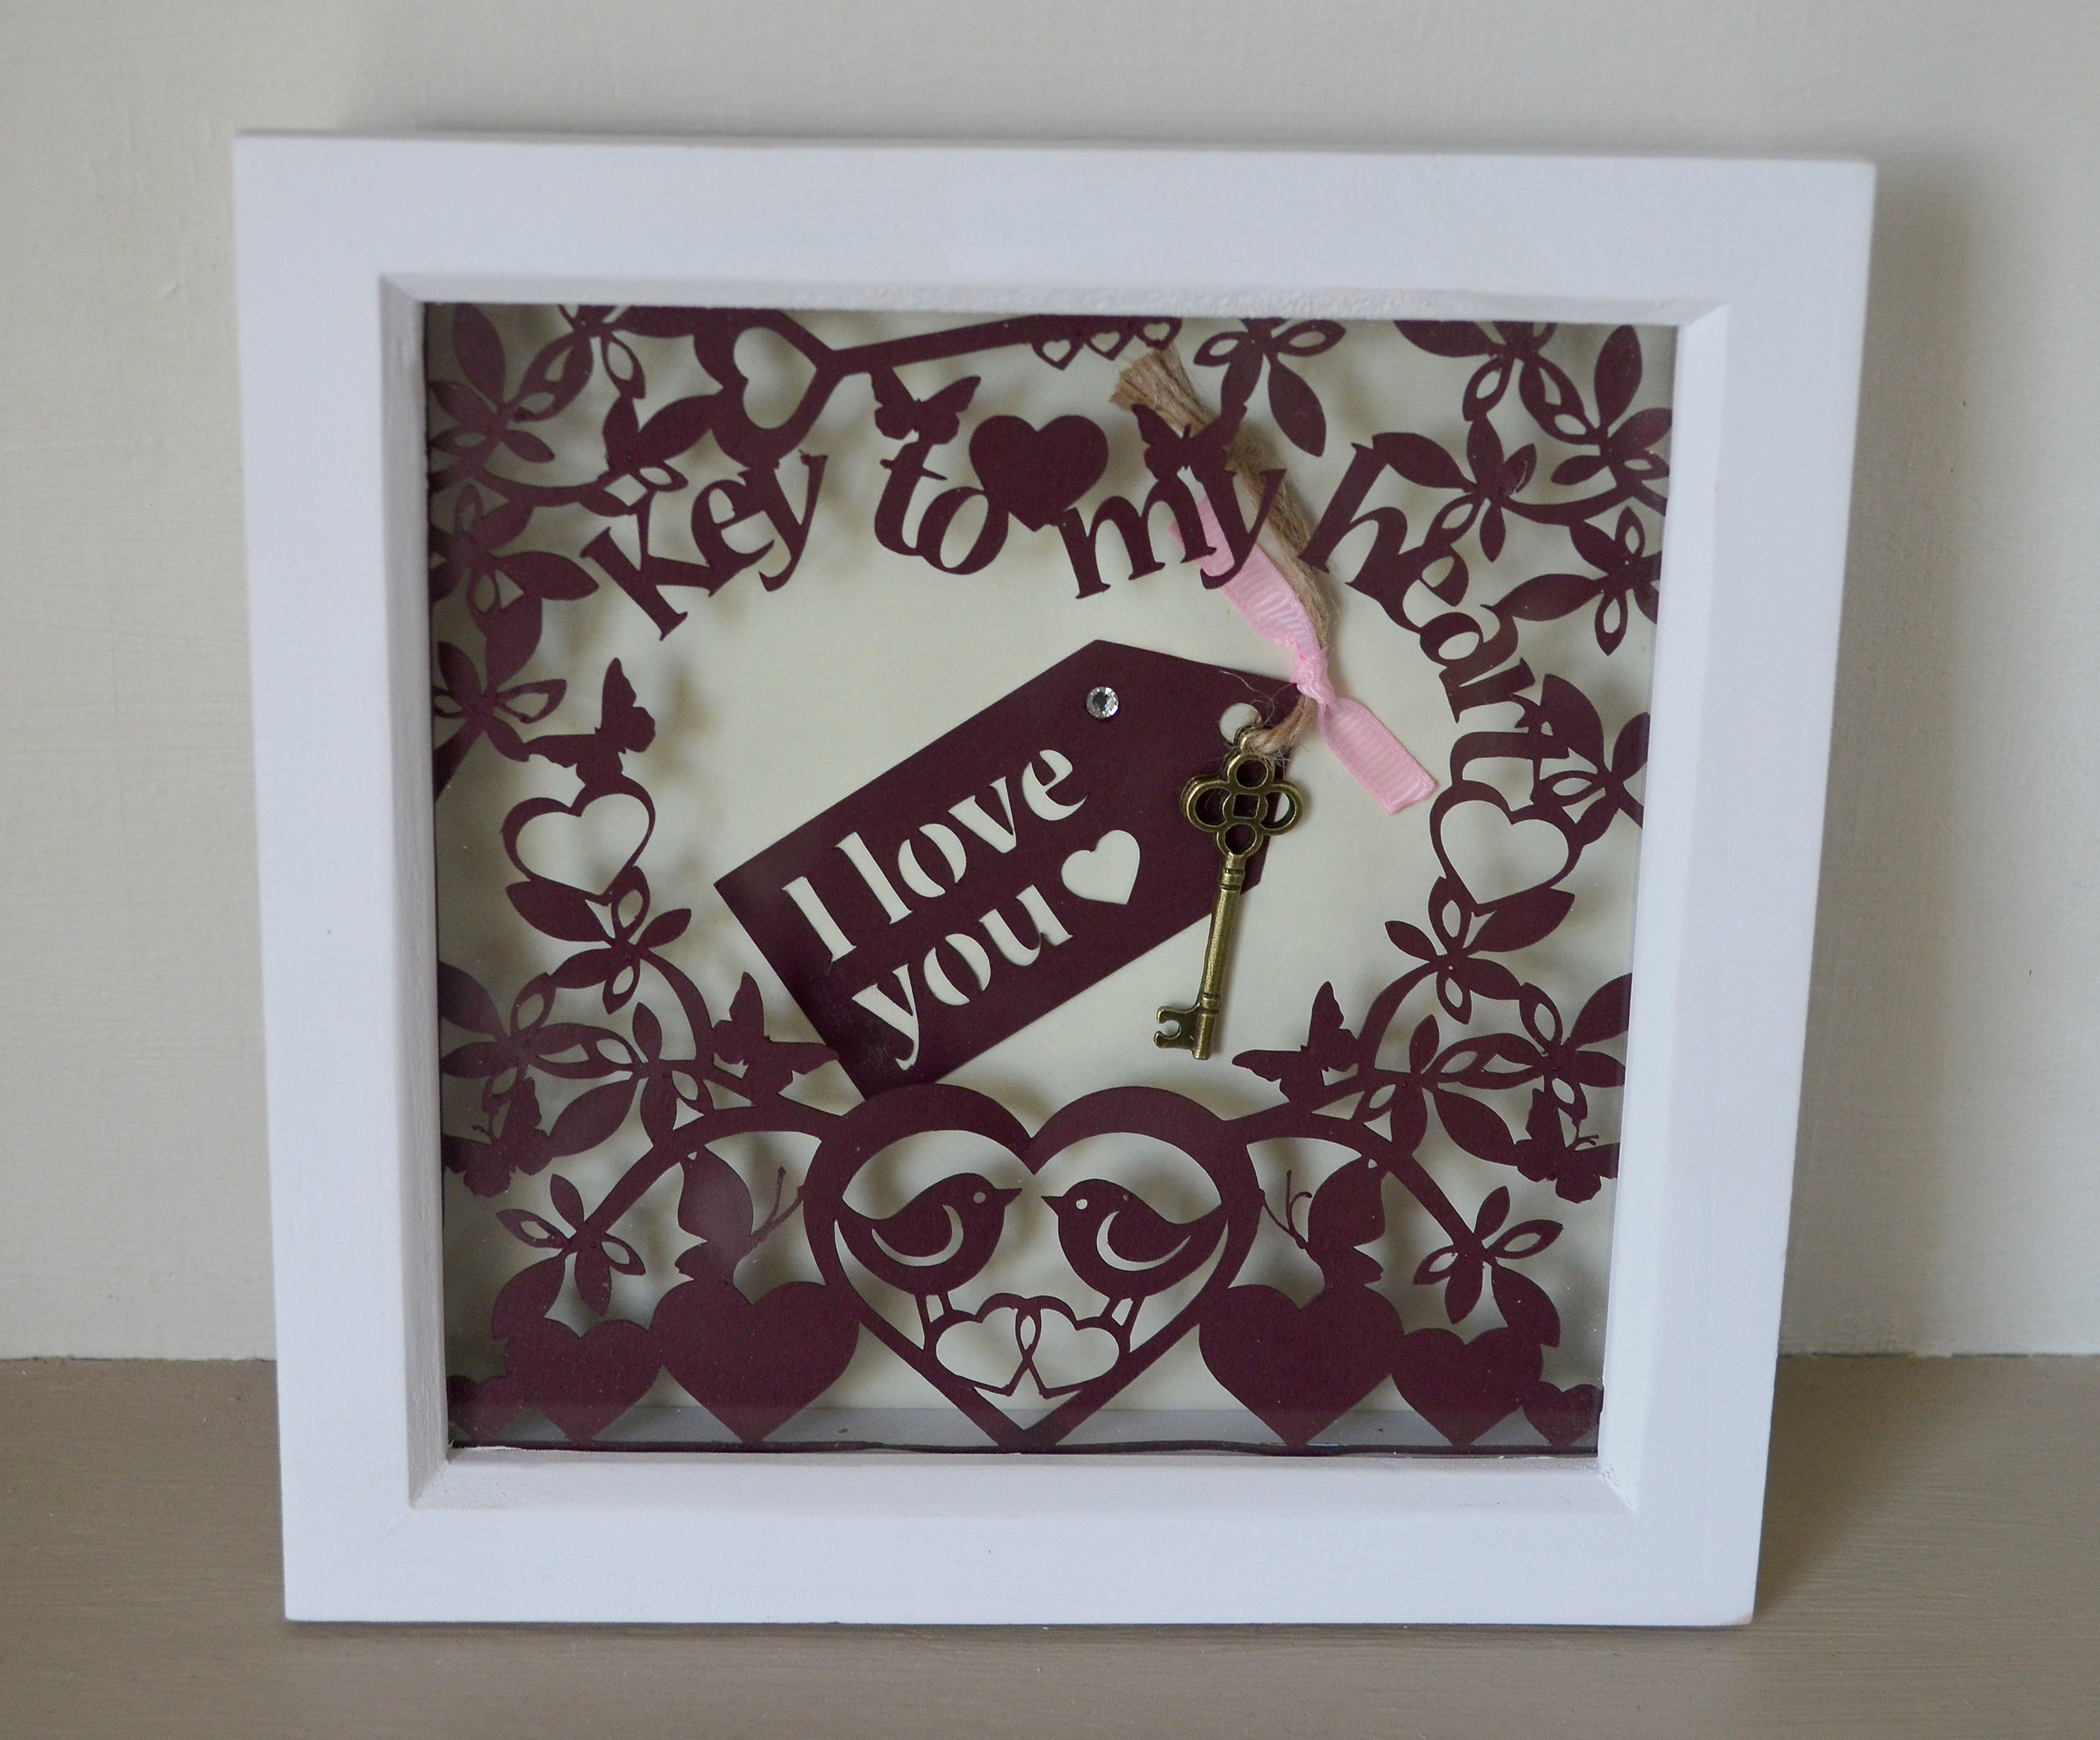 Key to my heart framed 3D papercut art | Quire Creative